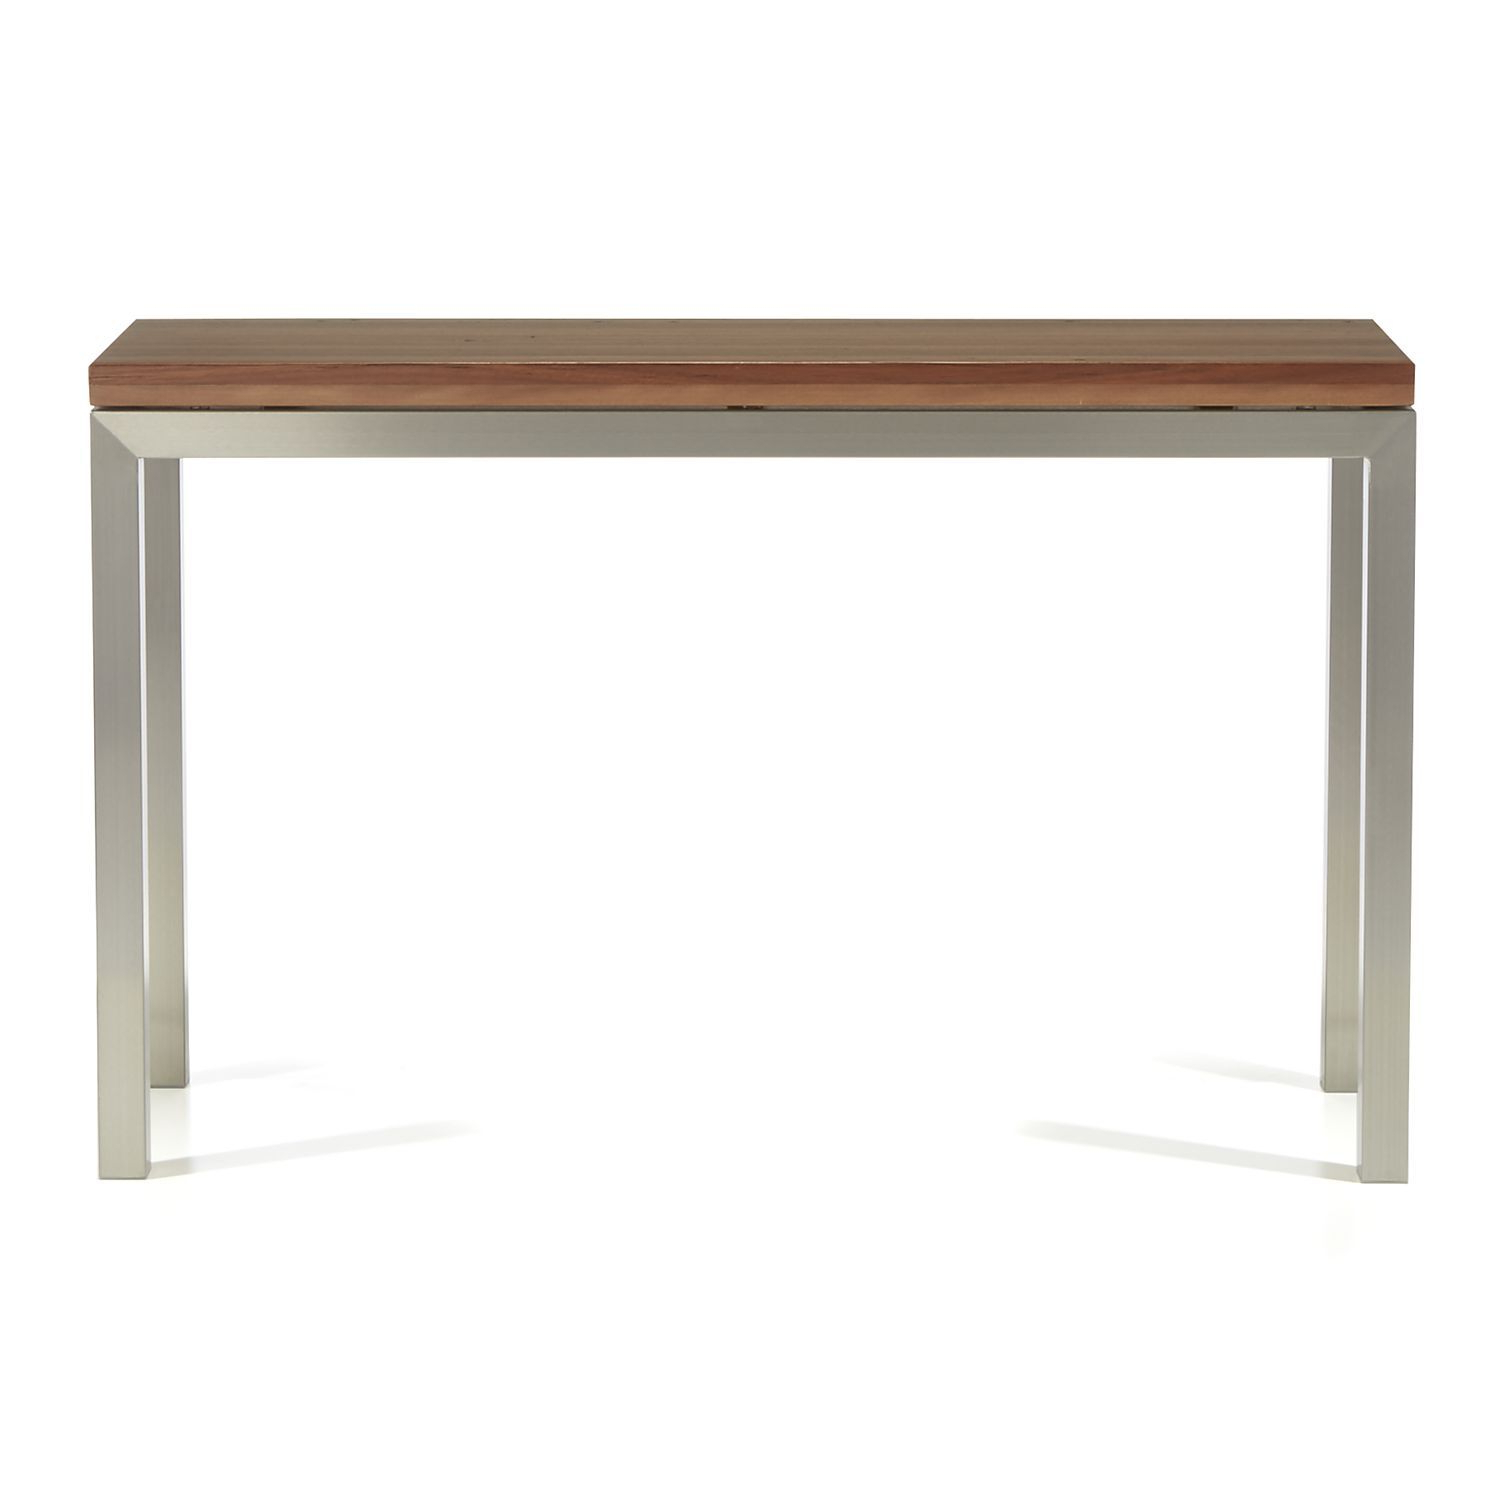 Parsons Reclaimed Wood Top/ Stainless Steel Base 48X16 Console With Regard To Parsons Concrete Top & Stainless Steel Base 48X16 Console Tables (Gallery 4 of 20)